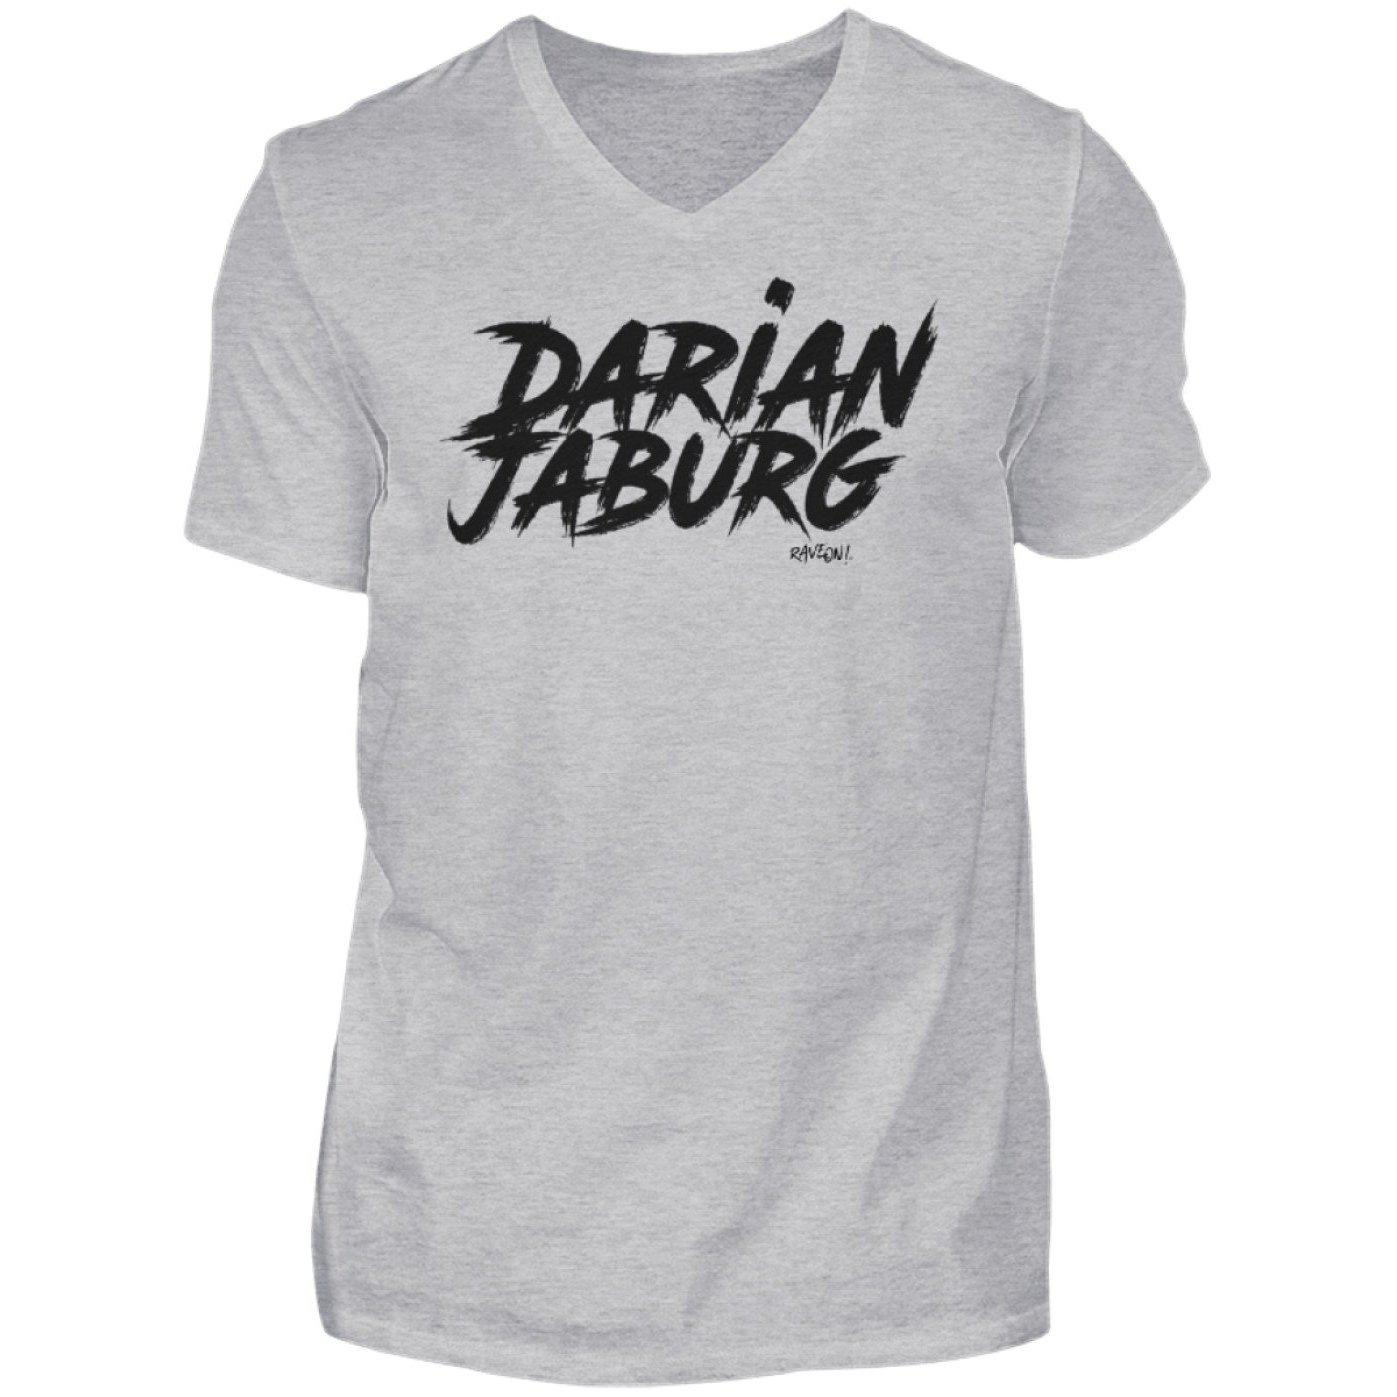 Darian Jaburg - BS Rec.White - Rave On!® - Herren V-Neck Shirt V-Neck Herrenshirt Heather Grey / S - Rave On!® der Club & Techno Szene Shop für Coole Junge Mode Streetwear Style & Fashion Outfits + Sexy Festival 420 Stuff